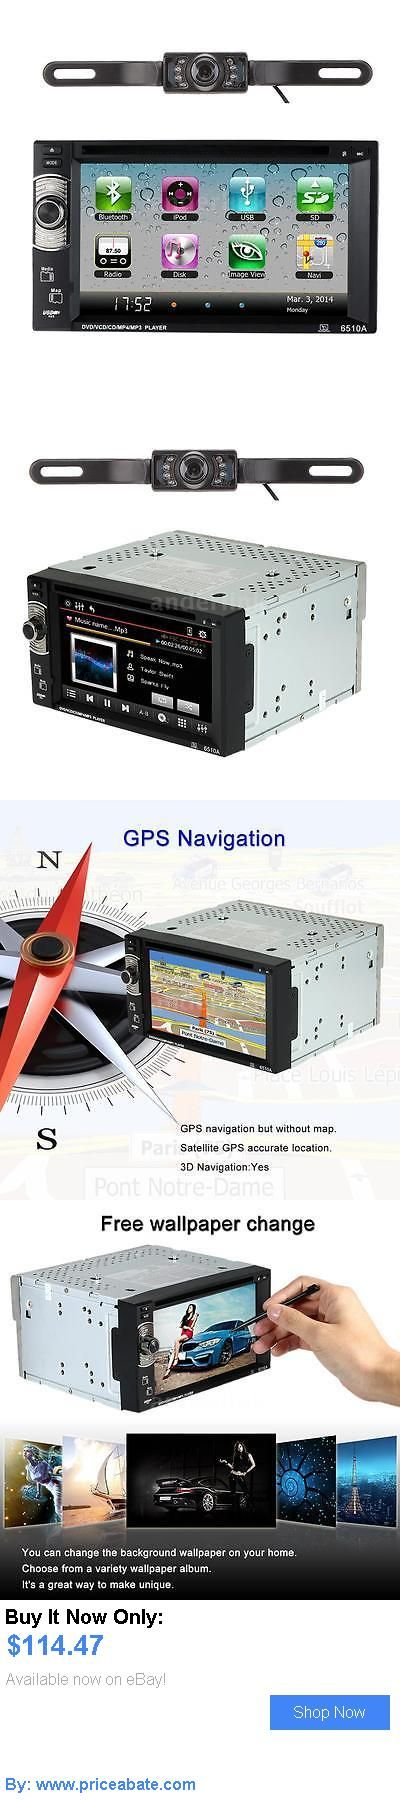 Car Audio Video And GPS: Gps Navigation 2 Din 6.2 Hd Car Dvd Player Bluetooth Radio Af/Fm Hd Camera N7s7 BUY IT NOW ONLY: $114.47 #priceabateCarAudioVideoAndGPS OR #priceabate